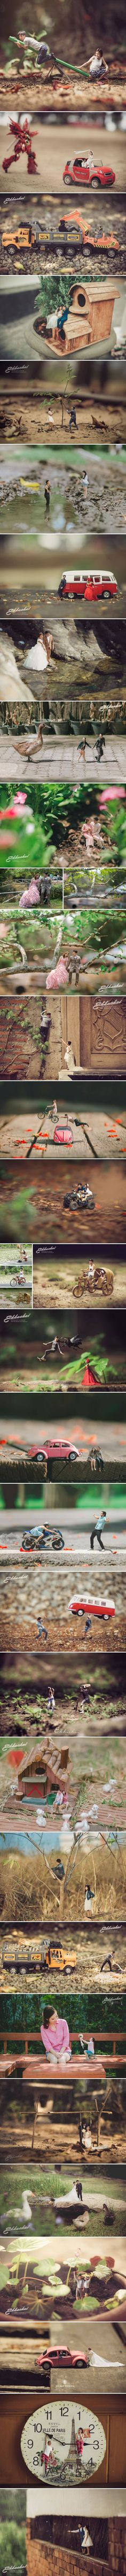 Miniature photography - this wedding photographer turns couples into miniature people ekkachai saelow Photography Lessons, Photoshop Photography, Toys Photography, Macro Photography, Creative Photography, Wedding Photography, Photoshop Tips, Photoshop Tutorial, Photografy Art